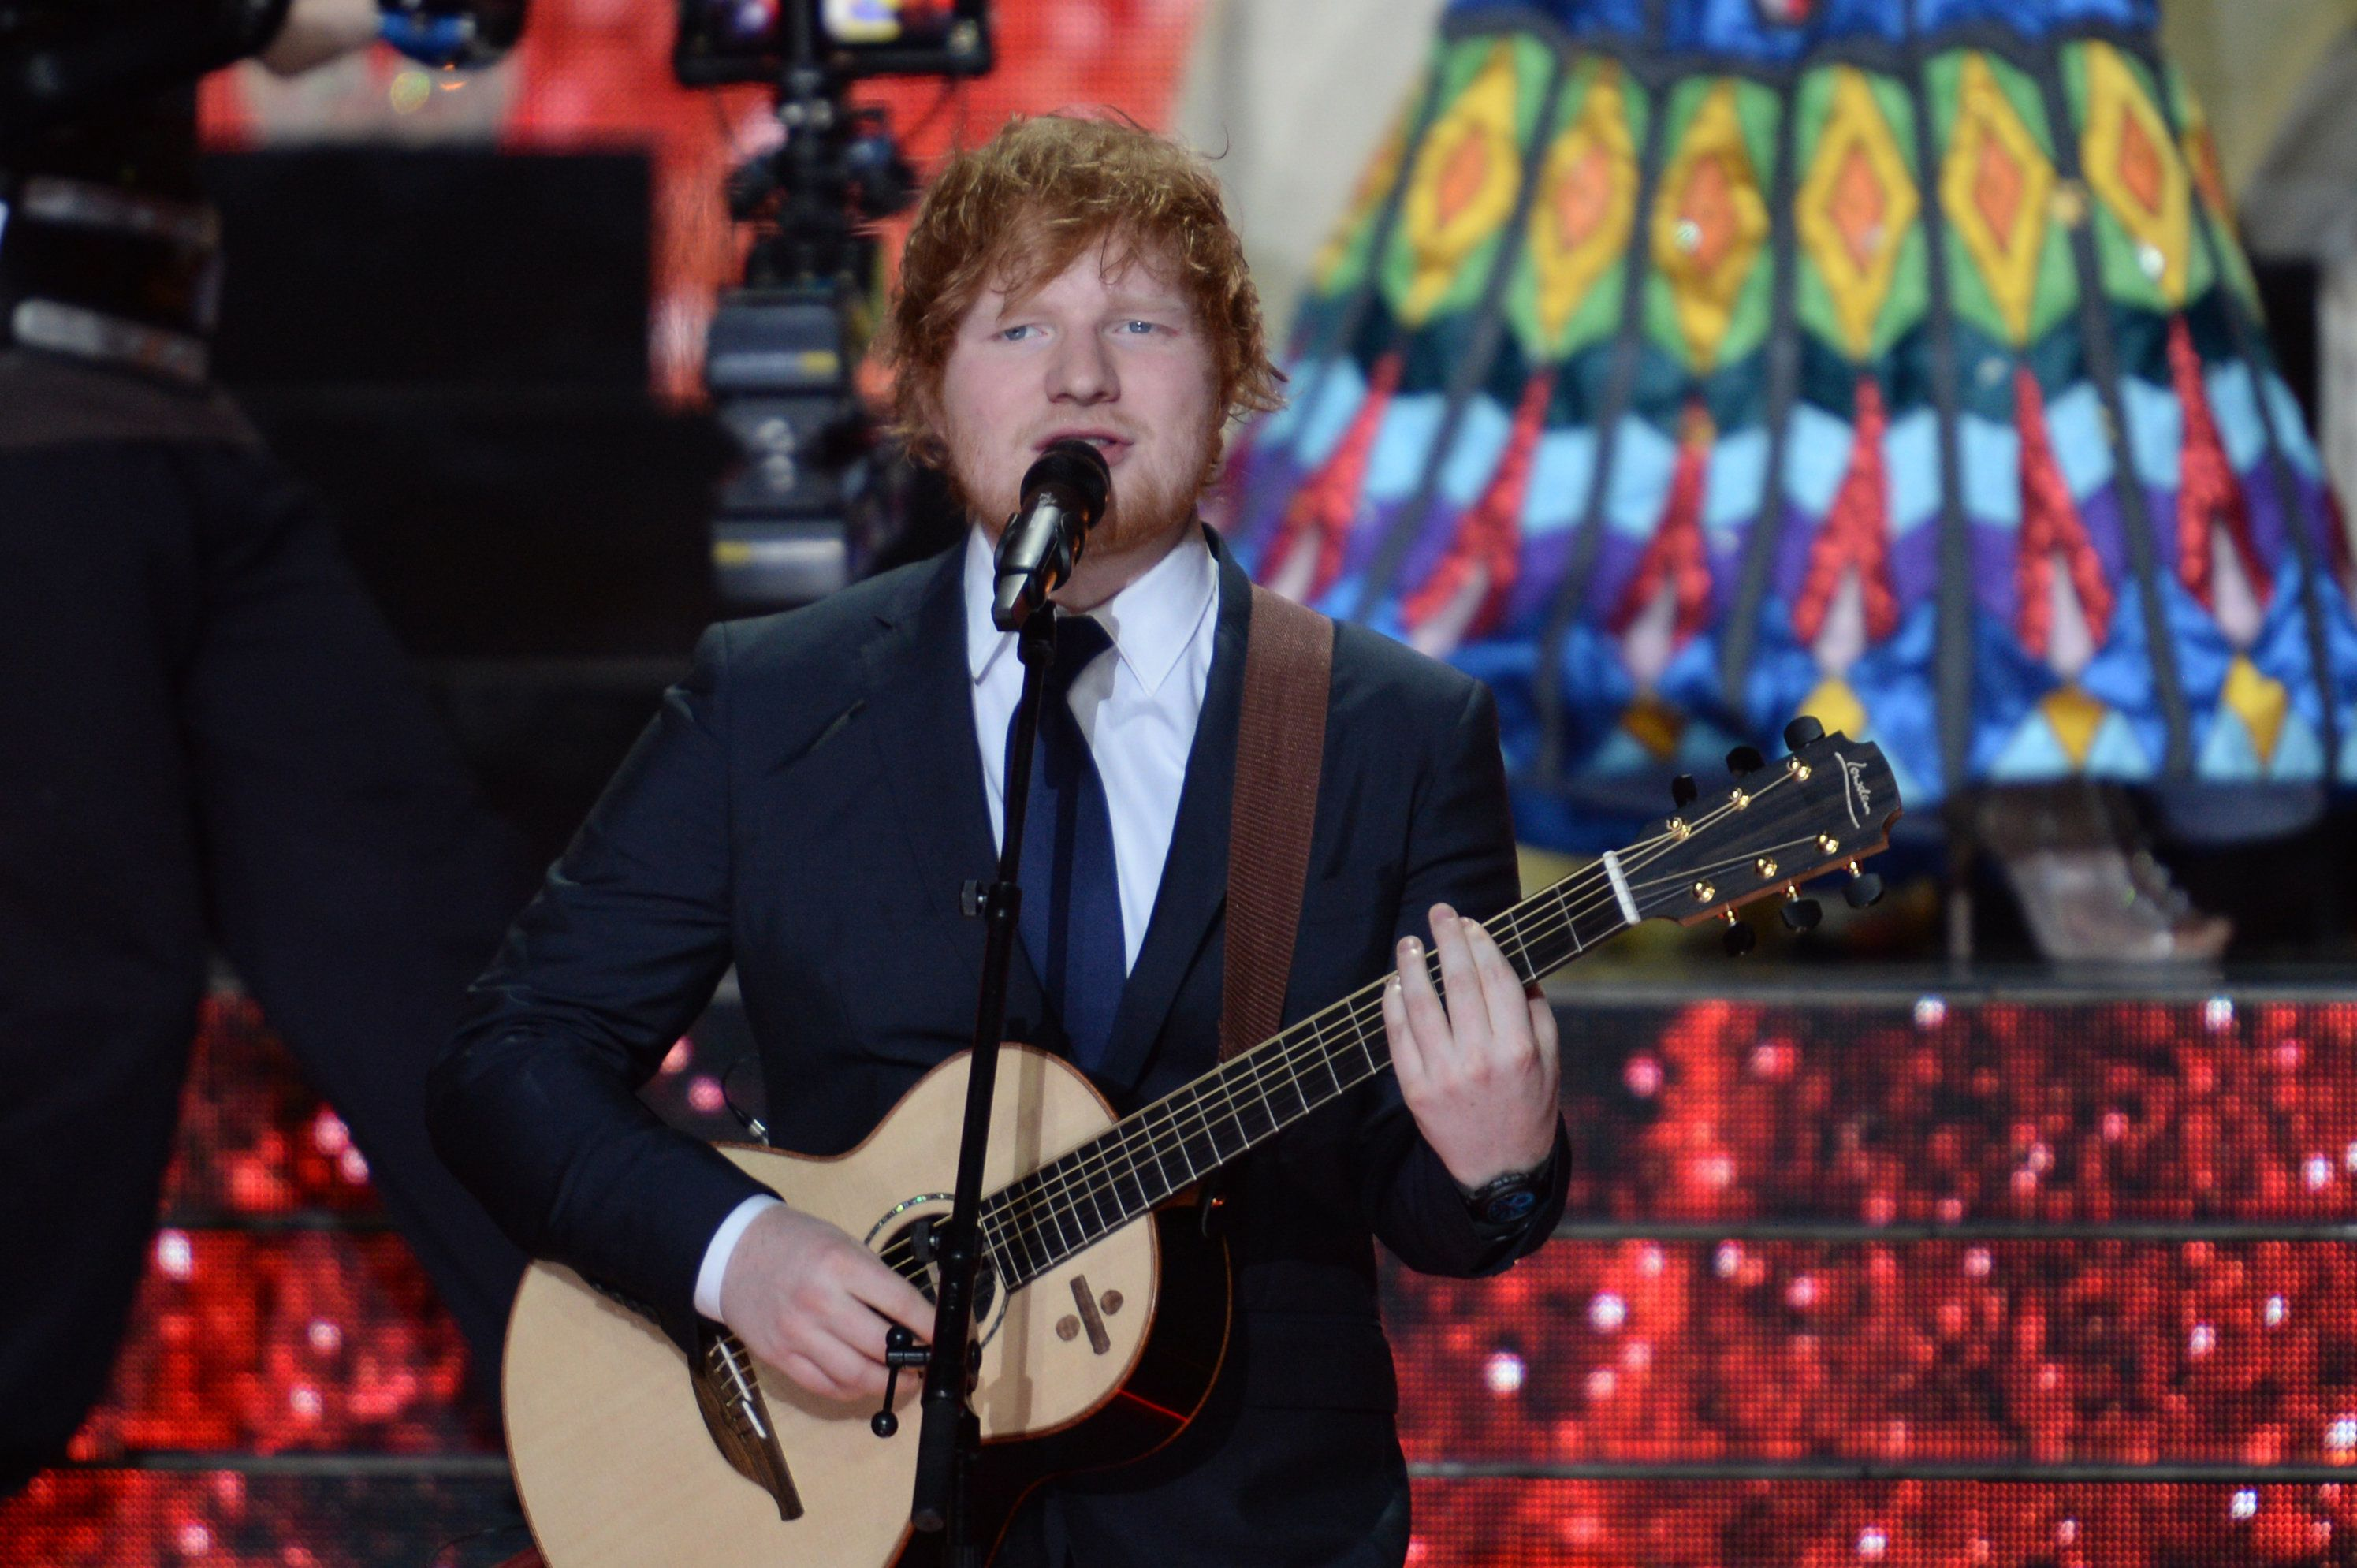 Ed Sheeran Delivers Tear-Jerking 'Supermarket Flowers' Performance at Brit Awards 2018